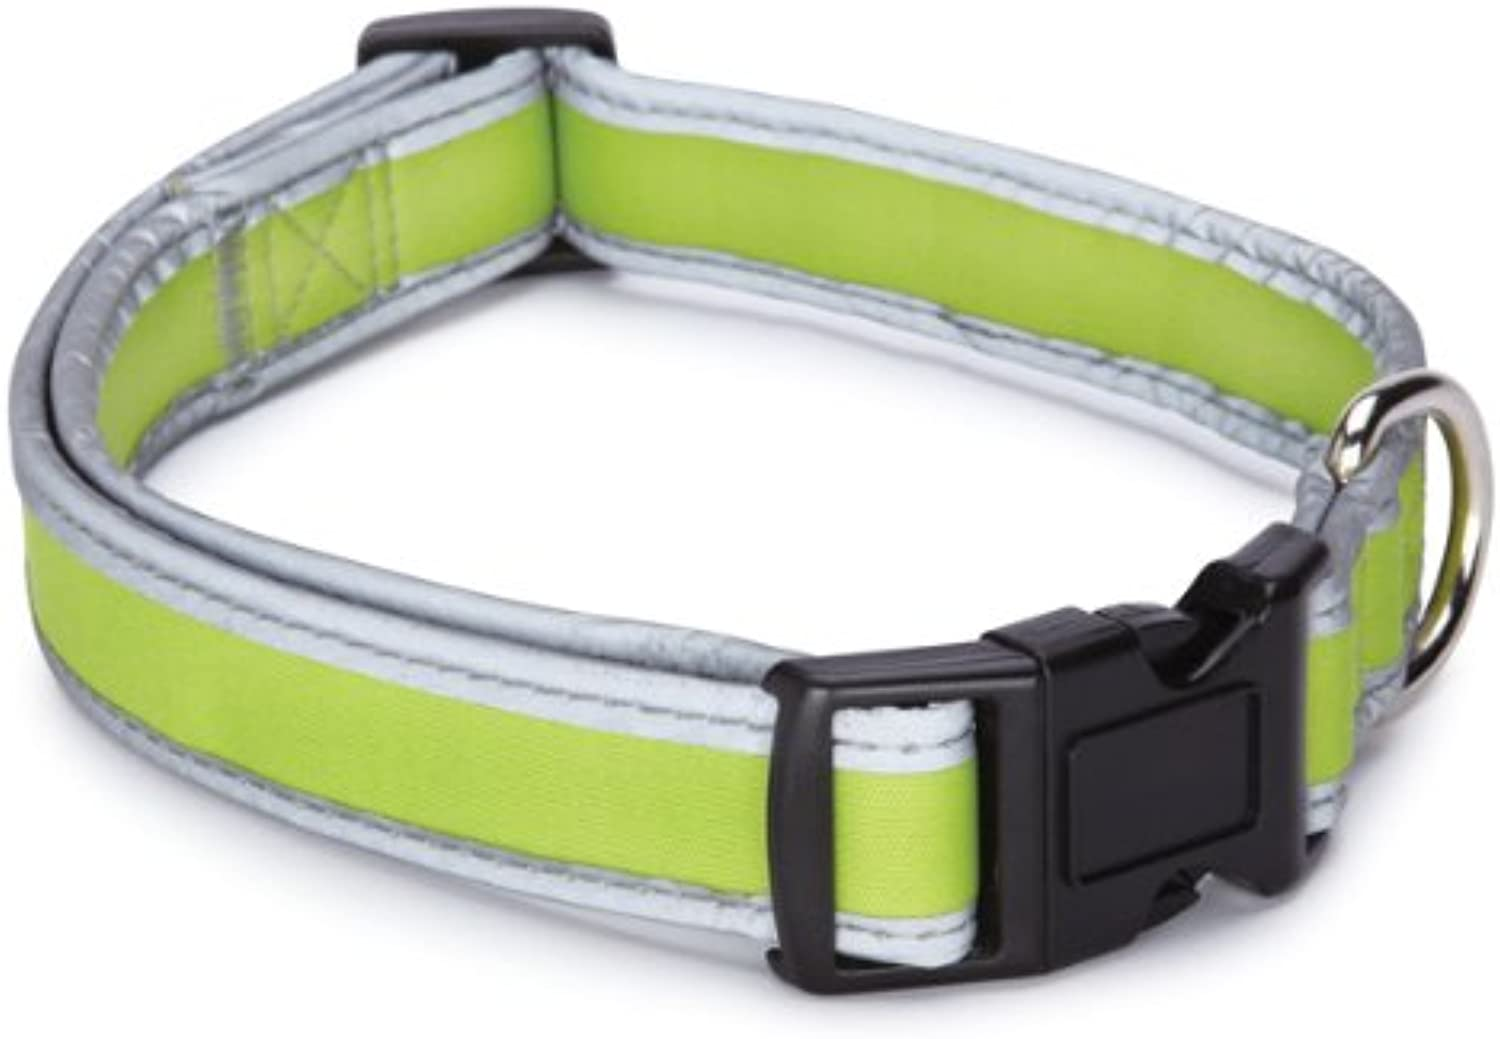 Casual Canine Nylon Reflective Neoprene Dog Collar, 10 to 16Inch, Parred